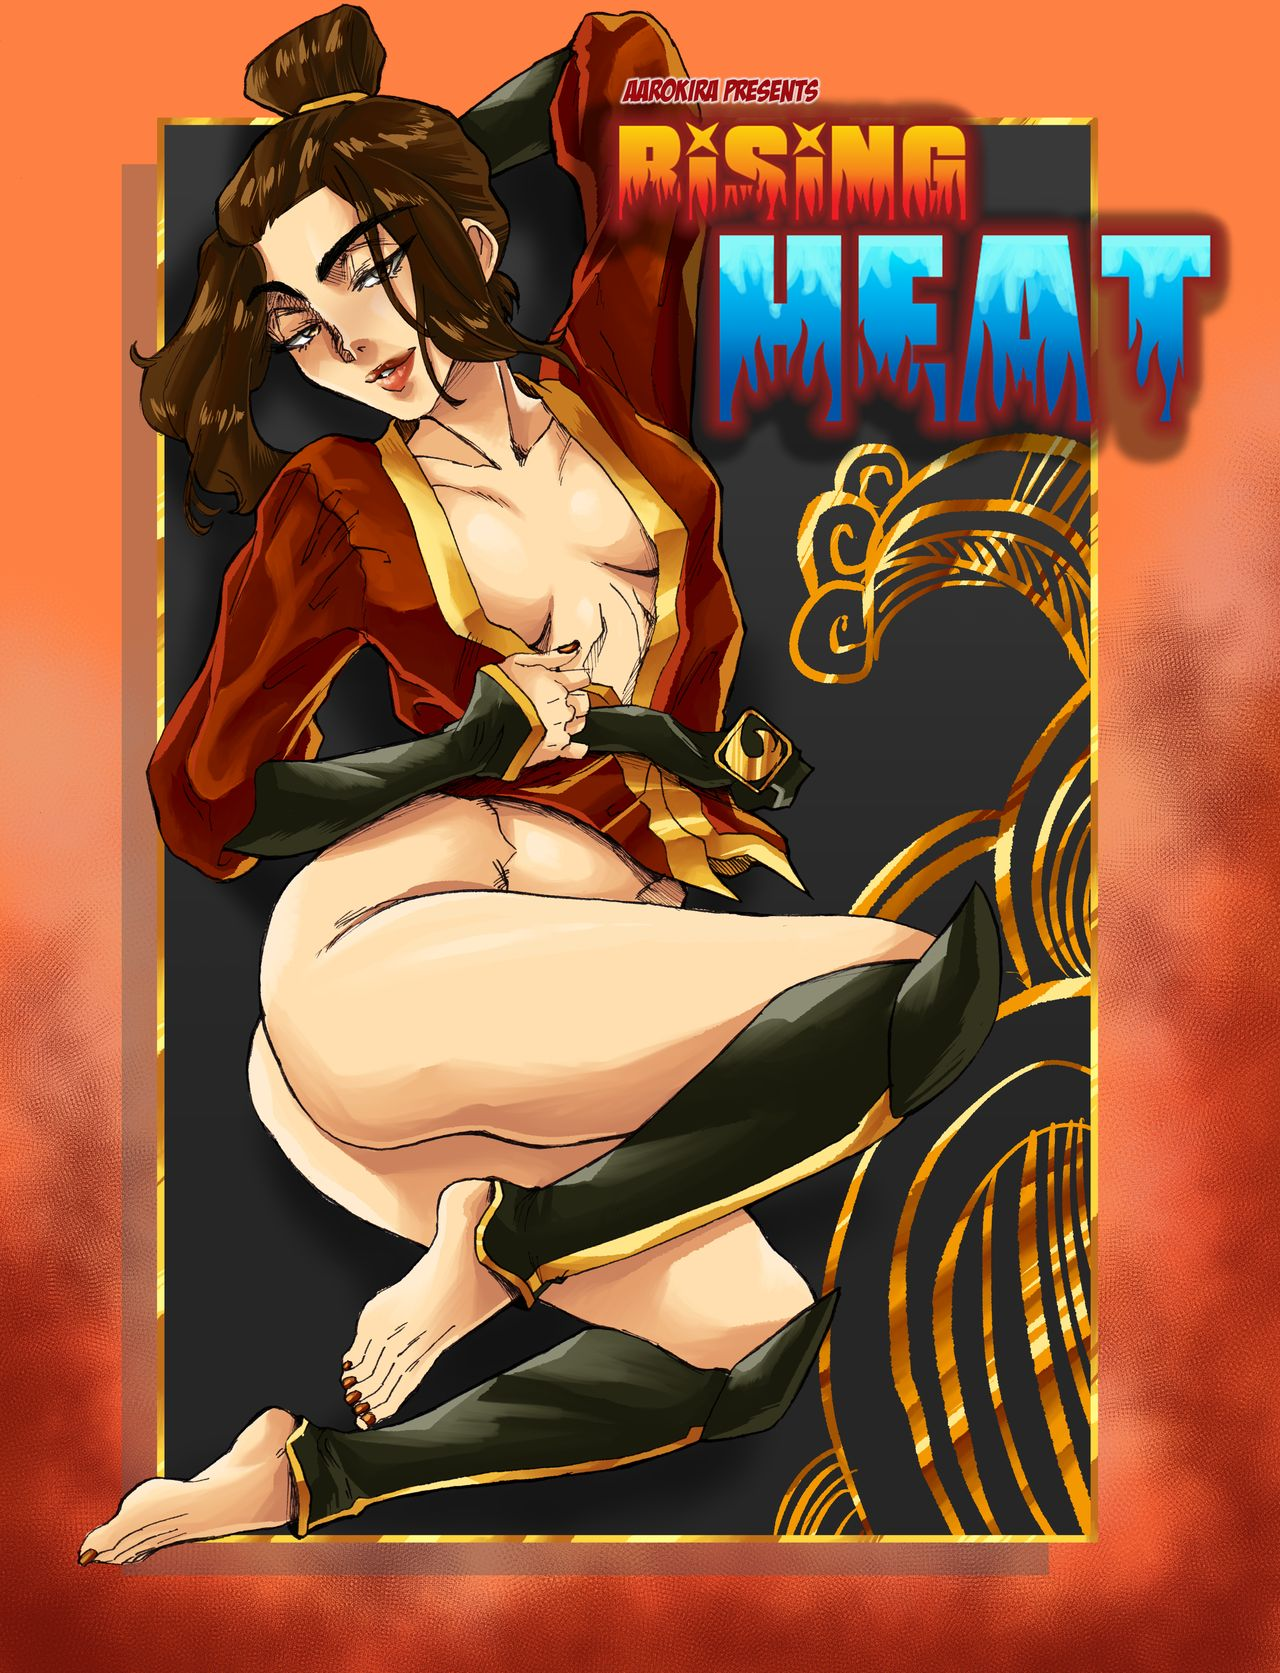 Avatar the last airbender porn comic